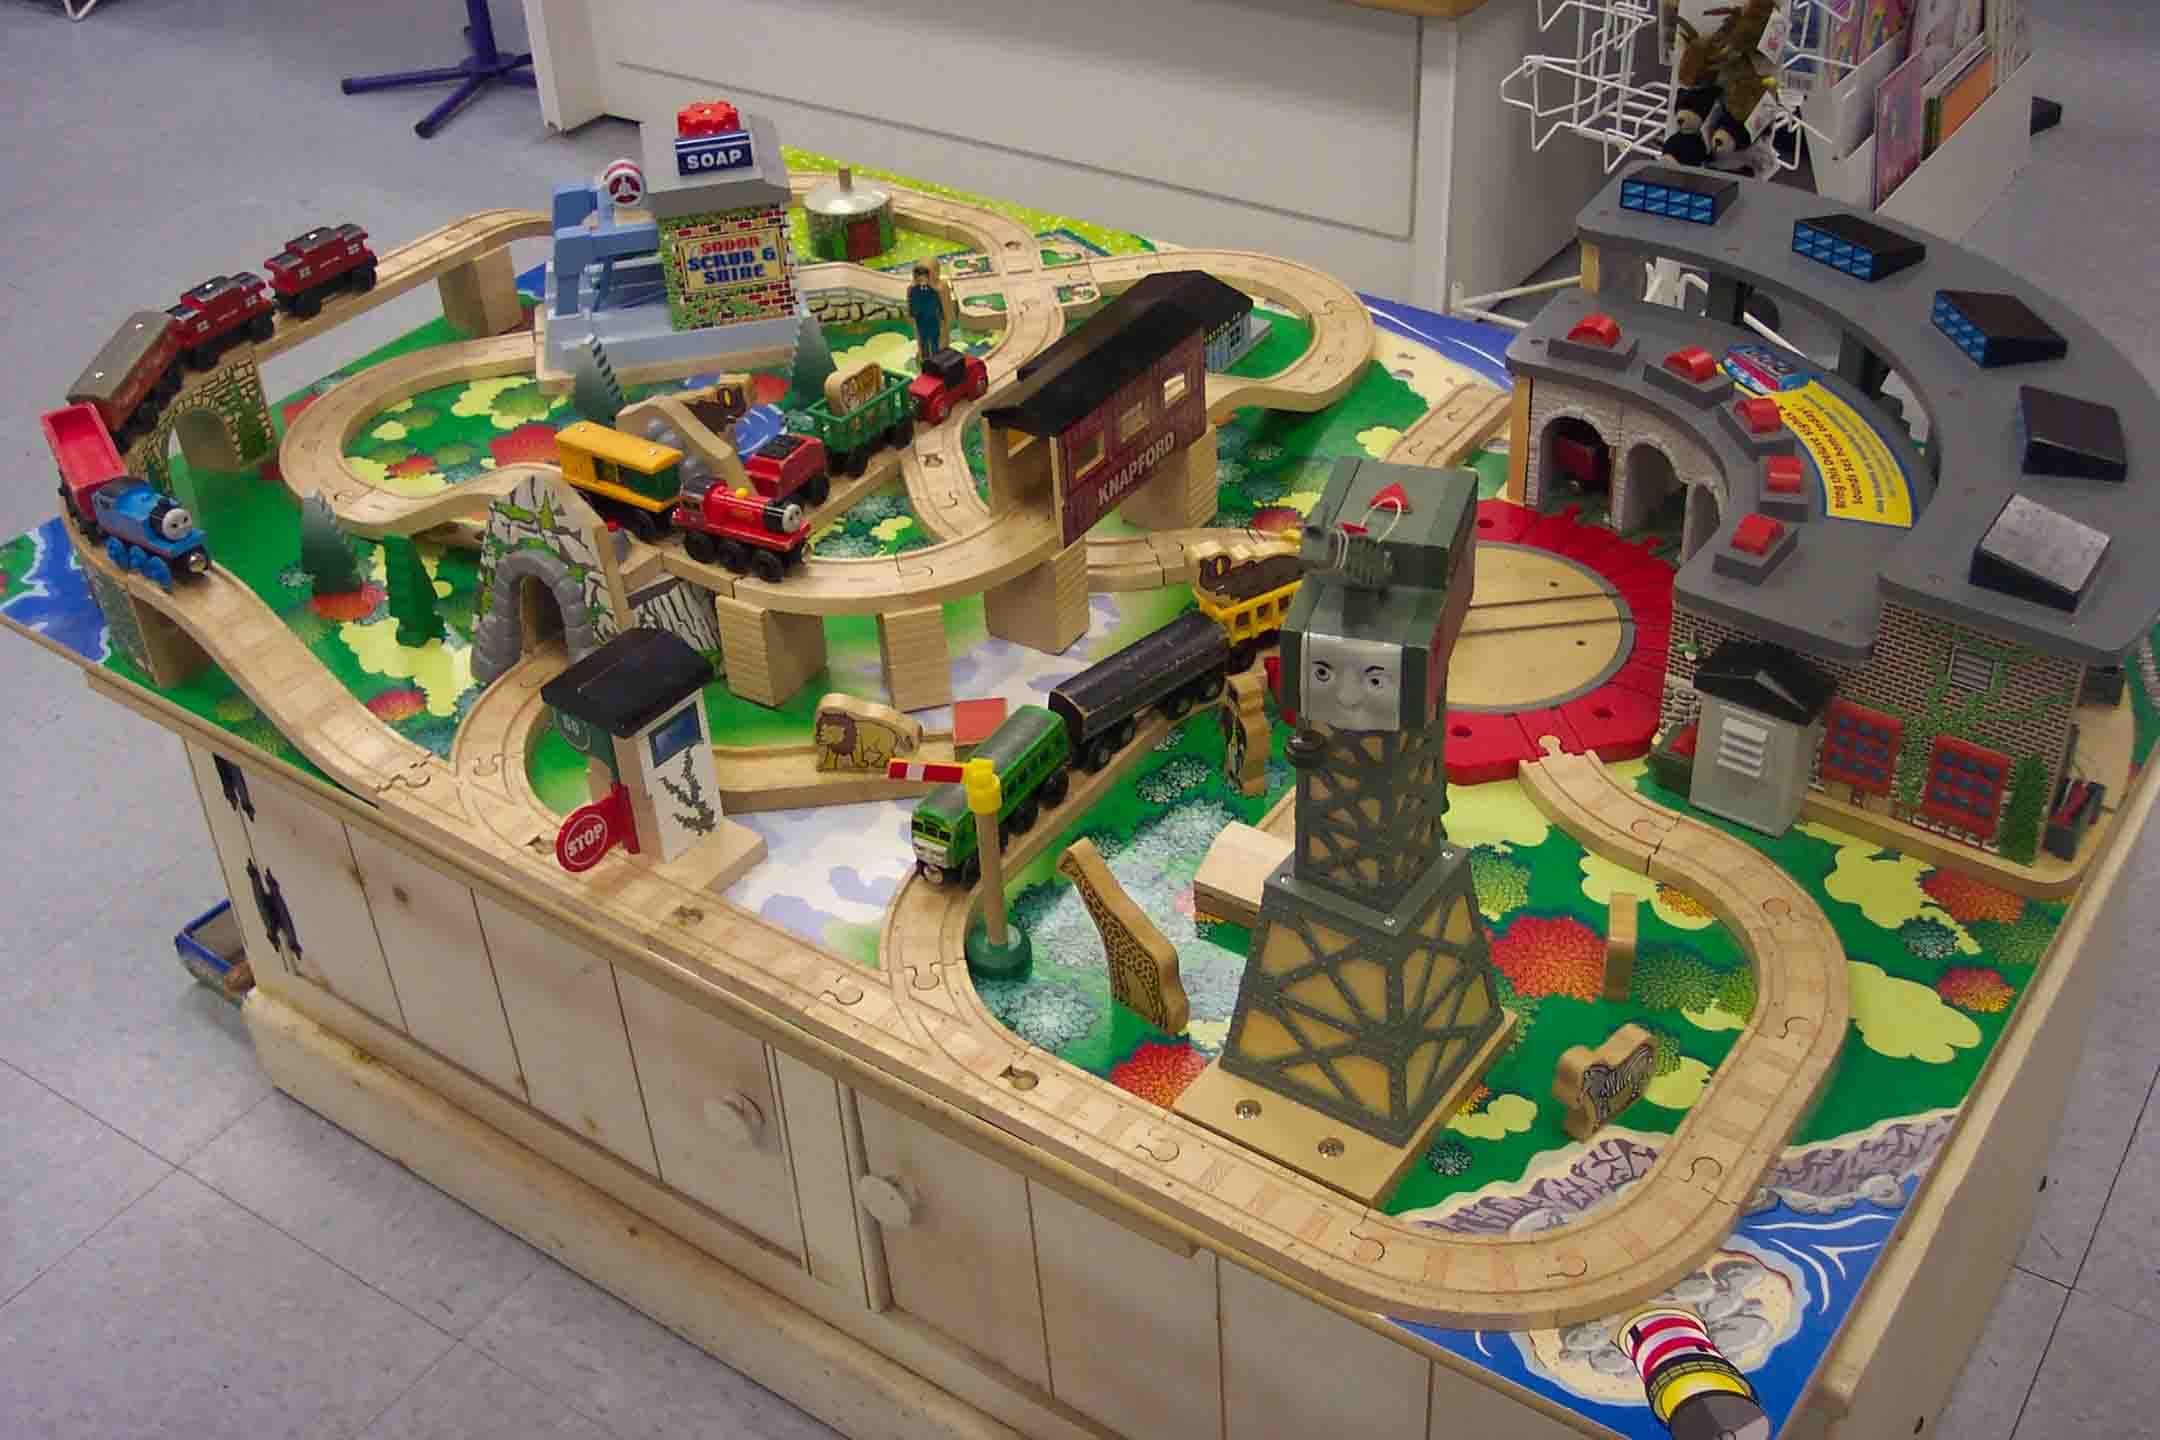 thomas train table designs - Google Search & thomas train table designs - Google Search | Thomas the Train and ...